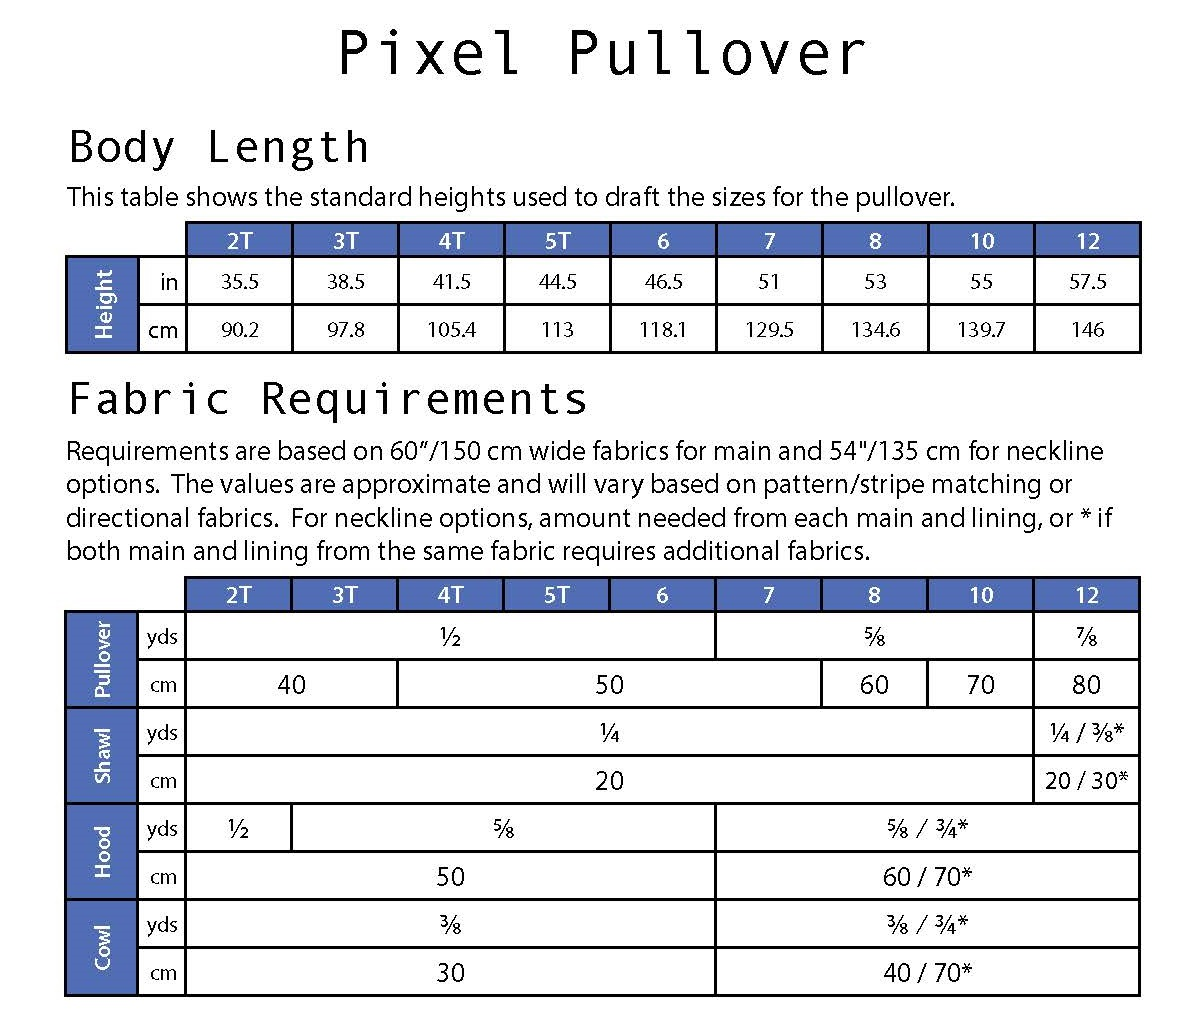 Pixel Pullover Jennuine Design fabric requirements